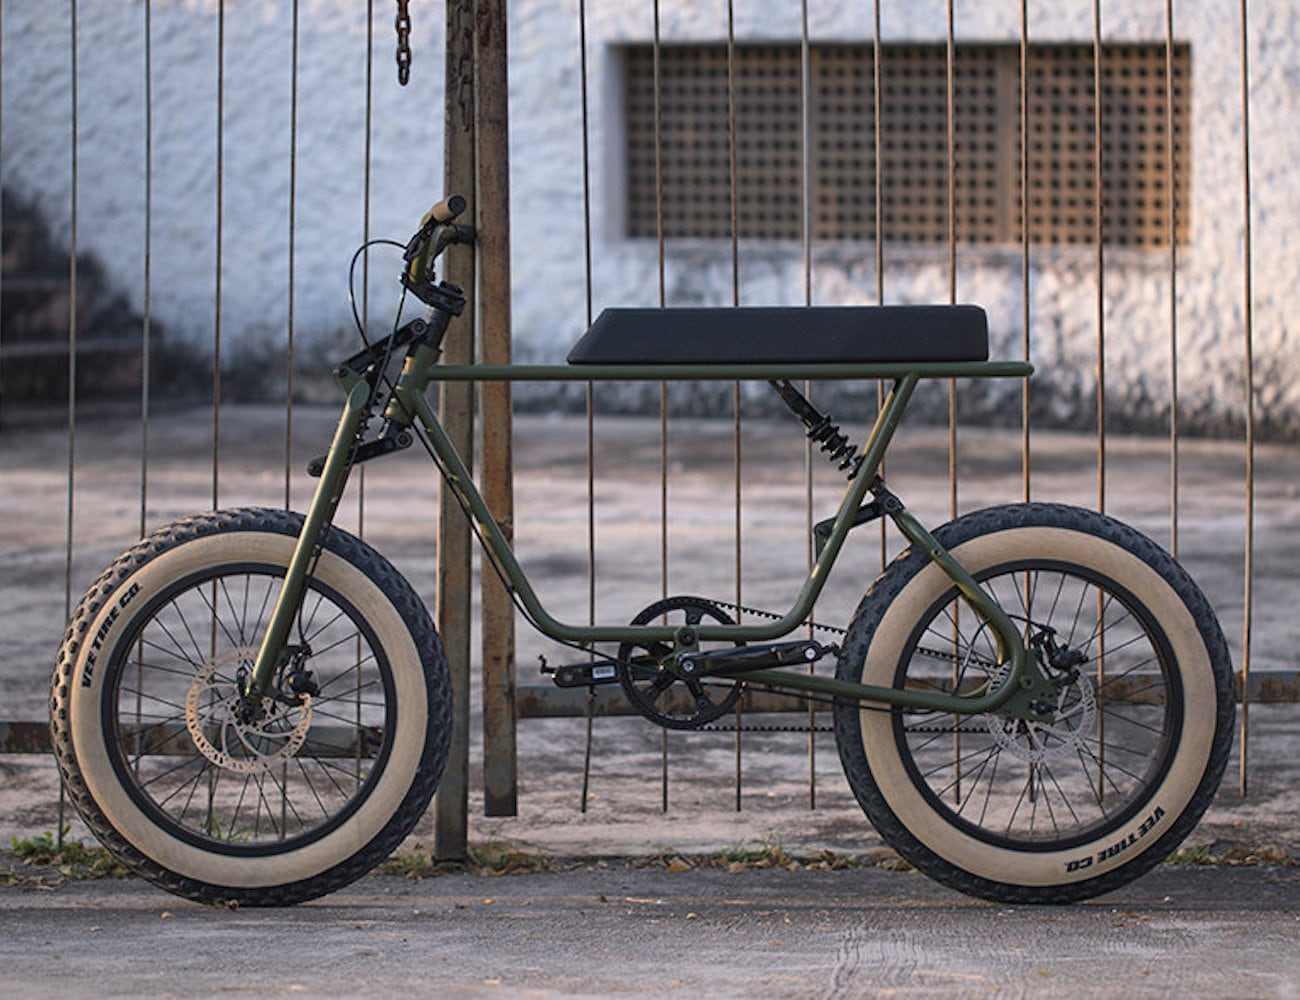 Buzzraw X Full Suspension Electric Bicycles